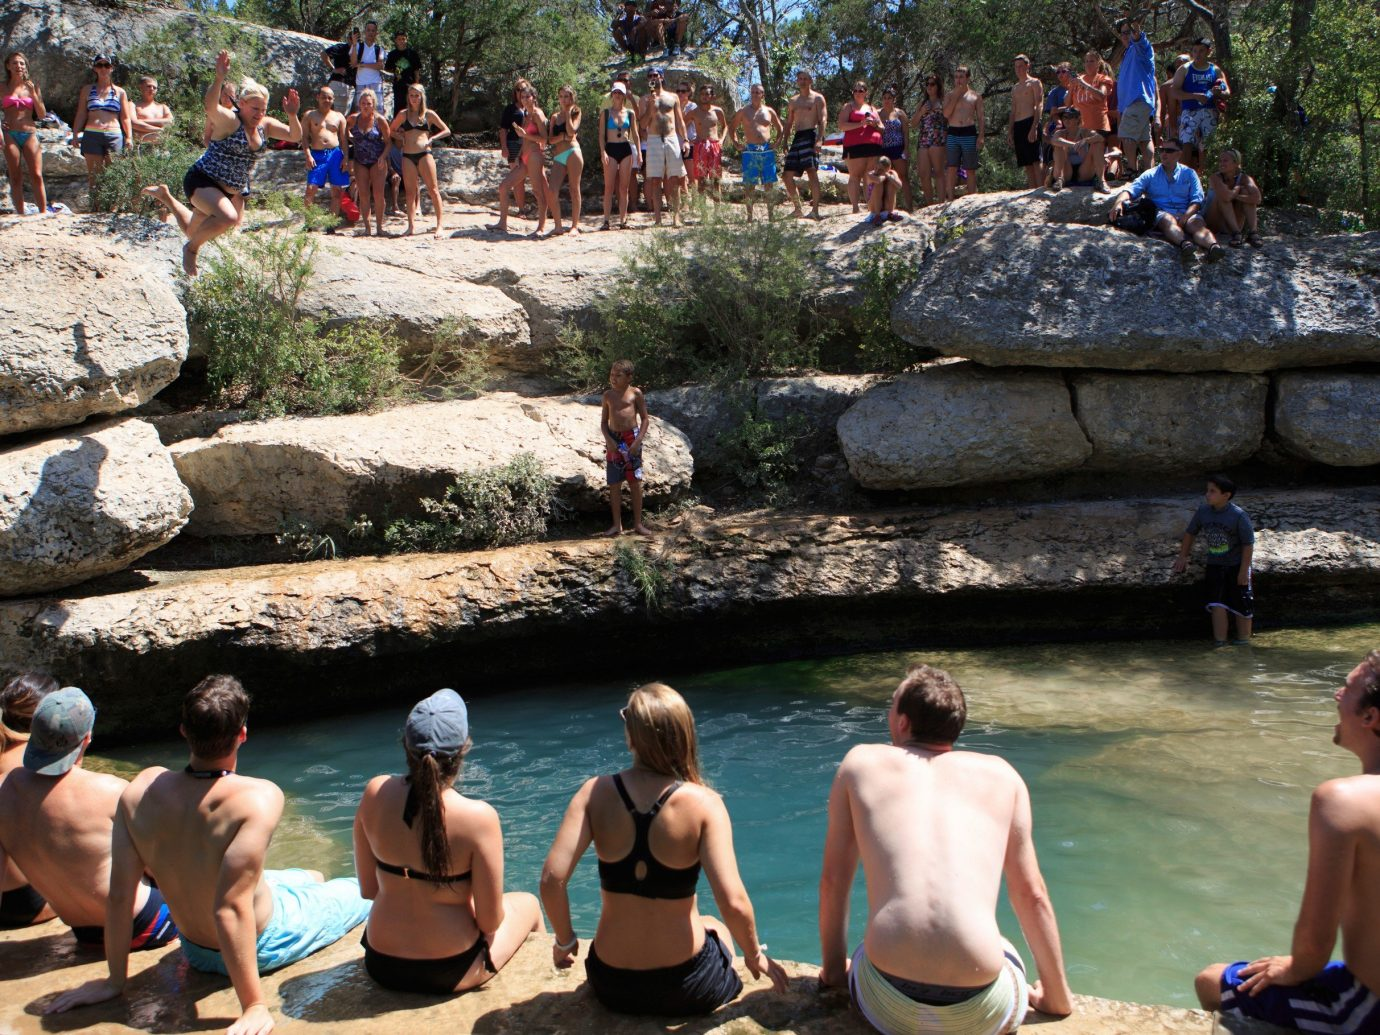 Outdoors + Adventure outdoor rock ground person people group tourism vacation physical fitness swimming stone crowd Raft several